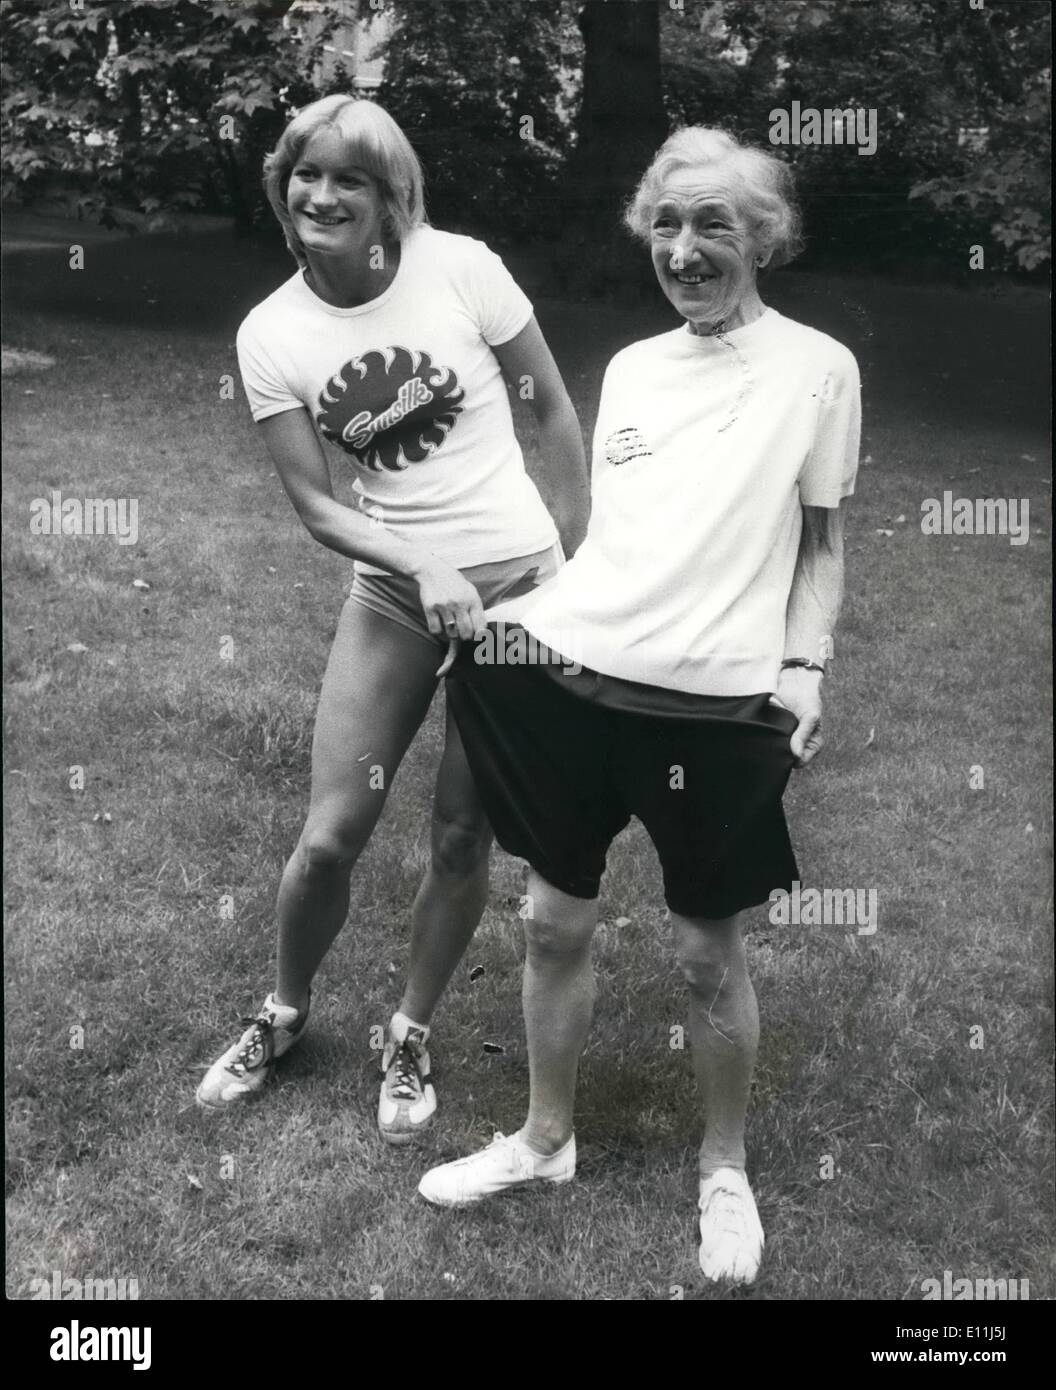 Jul. 07, 1978 - The Long and the Short of it: What a difference 50 years make- Vera Searle 76 - years - old Chairman Stock Photo